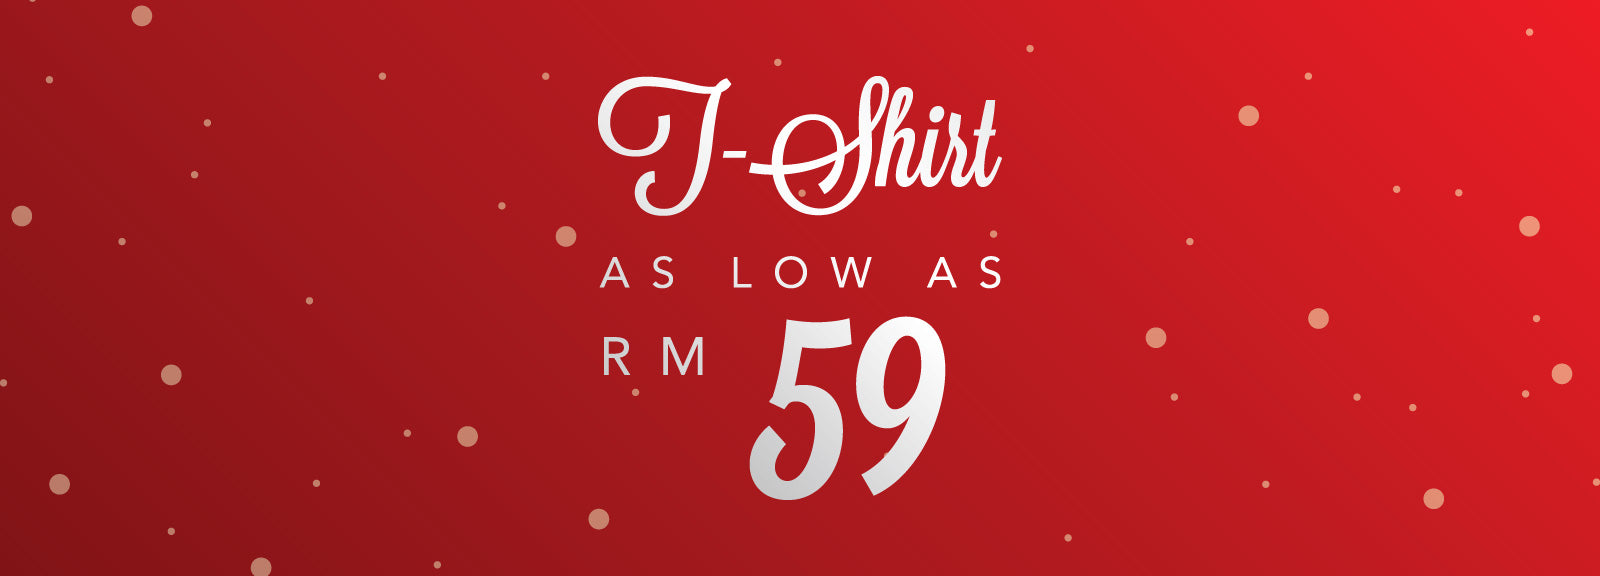 All T-Shirt Under RM 59